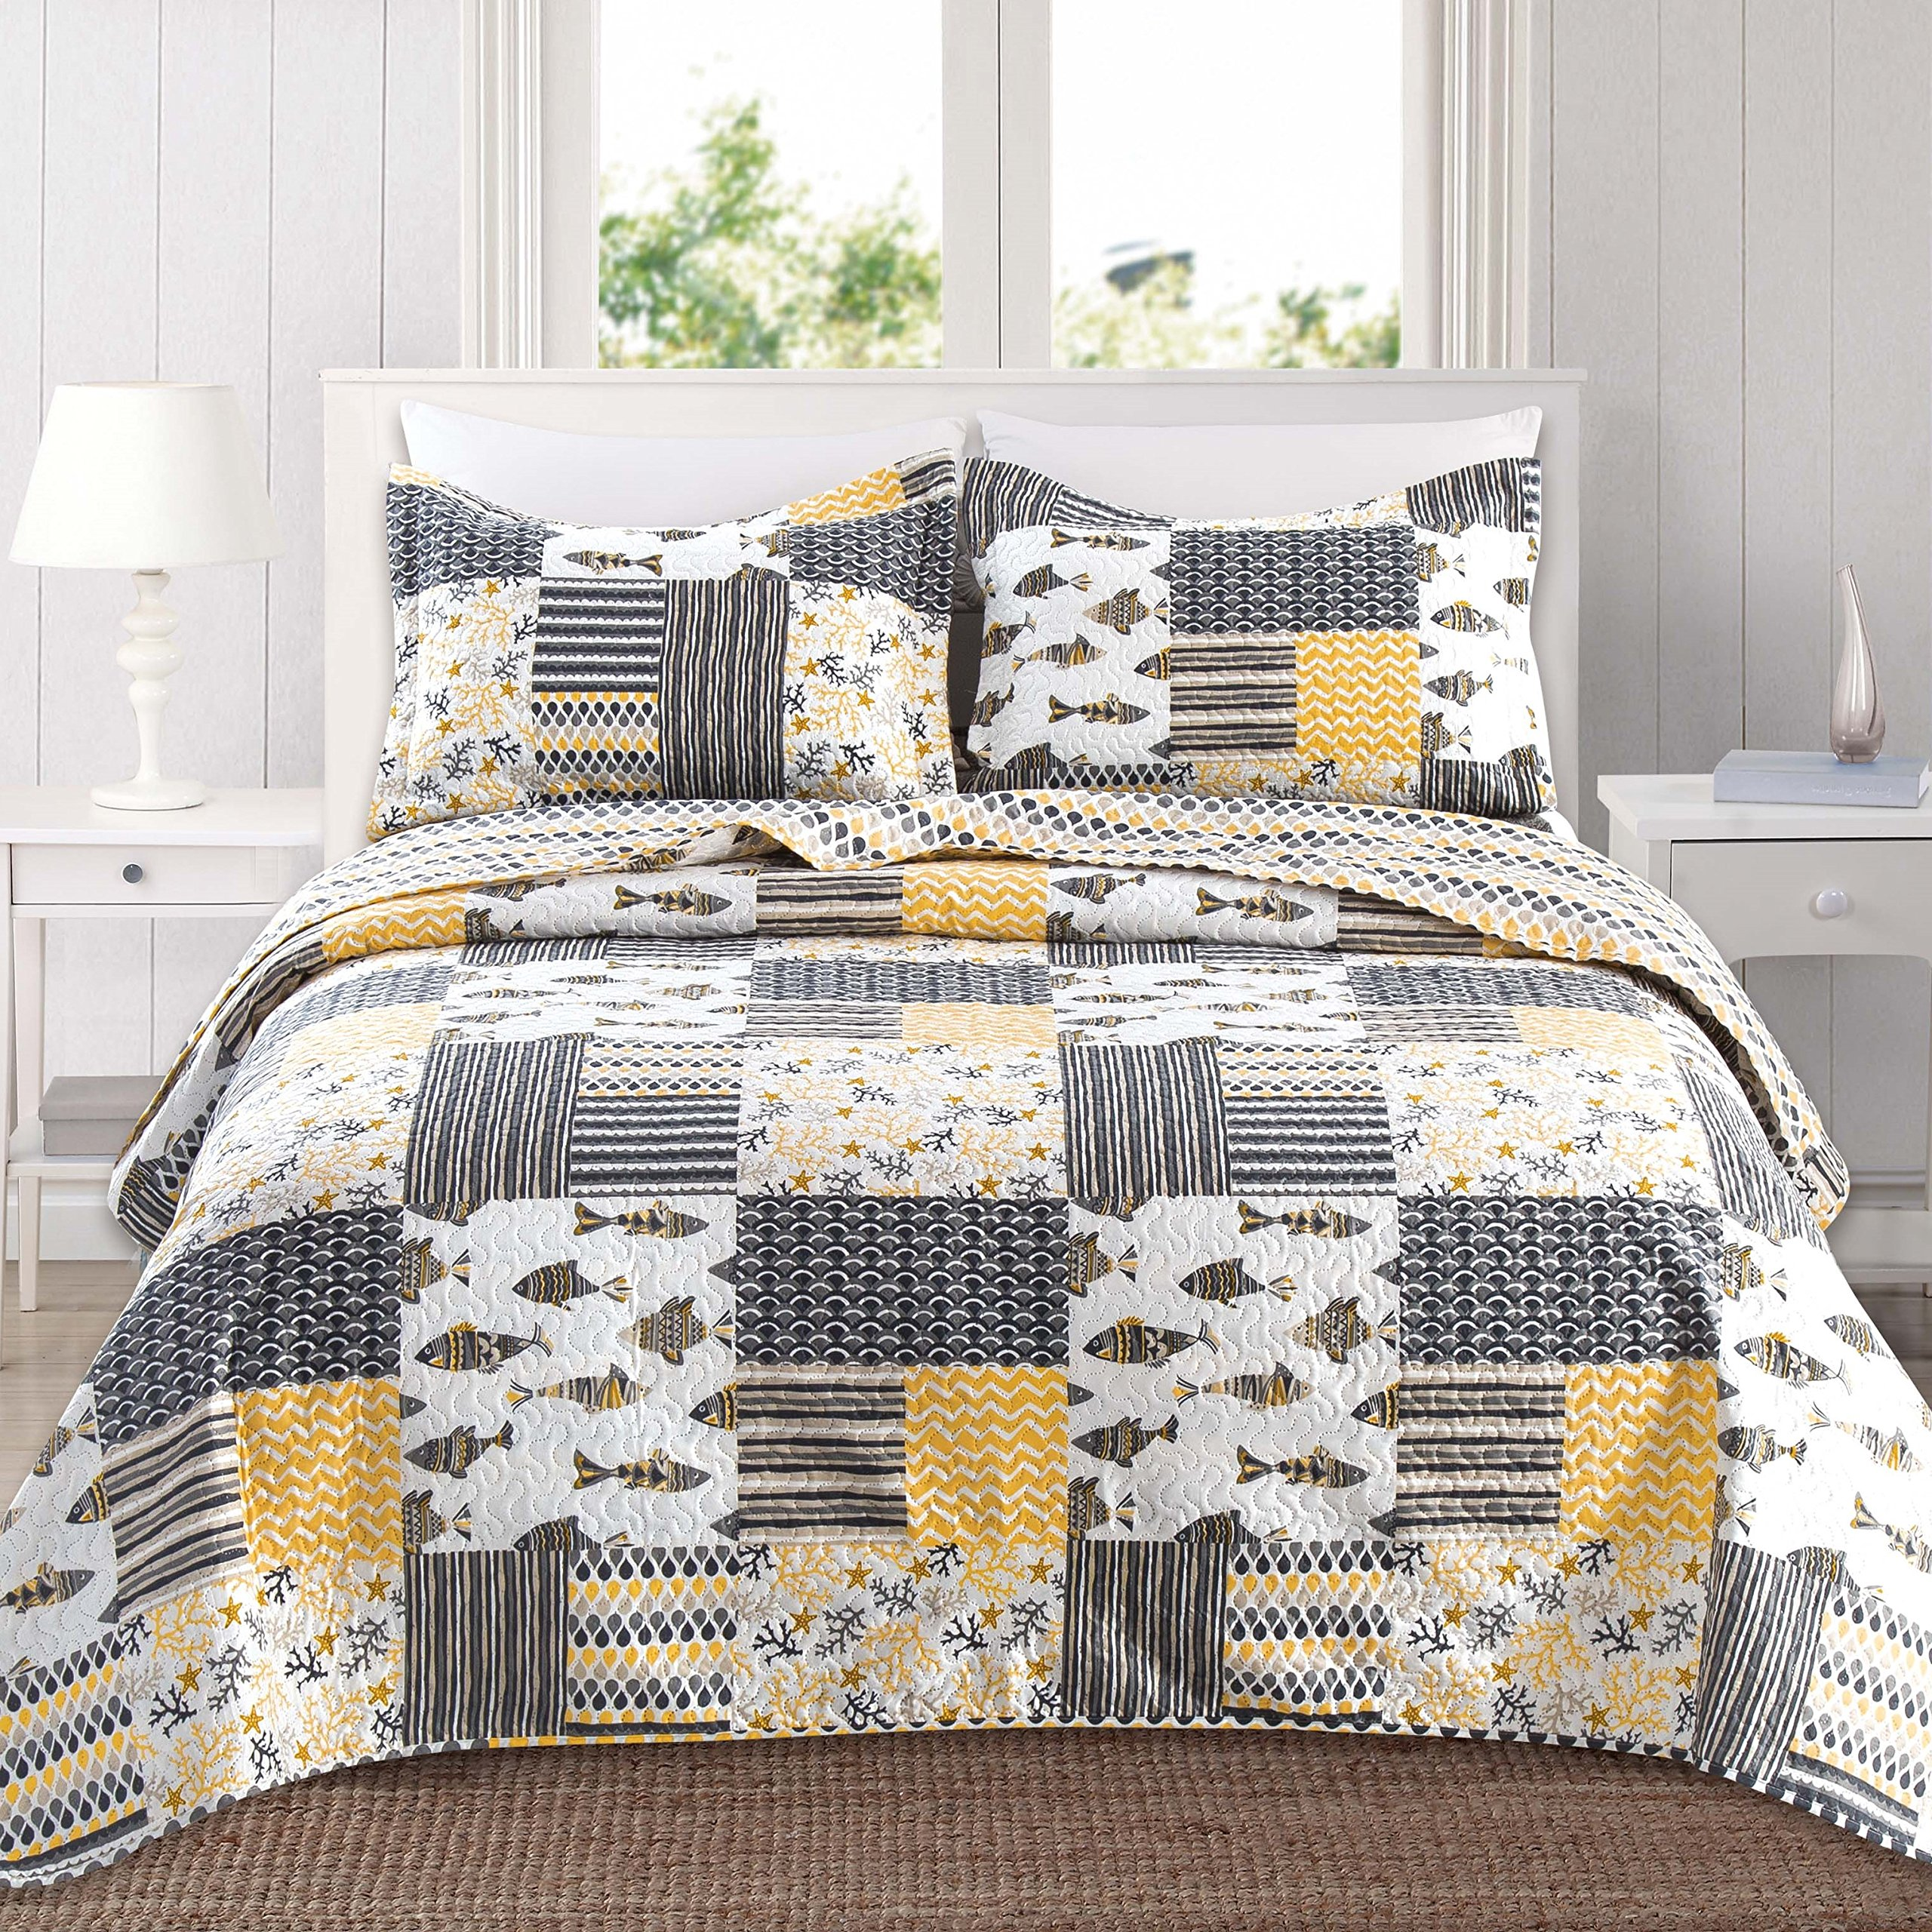 Home Fashion Designs 3-Piece Reversible Quilt Set with Shams. All-Season Bedspread with Patchwork Pattern. Barbados Collection By Brand. (Full/Queen, Grey/Yellow)